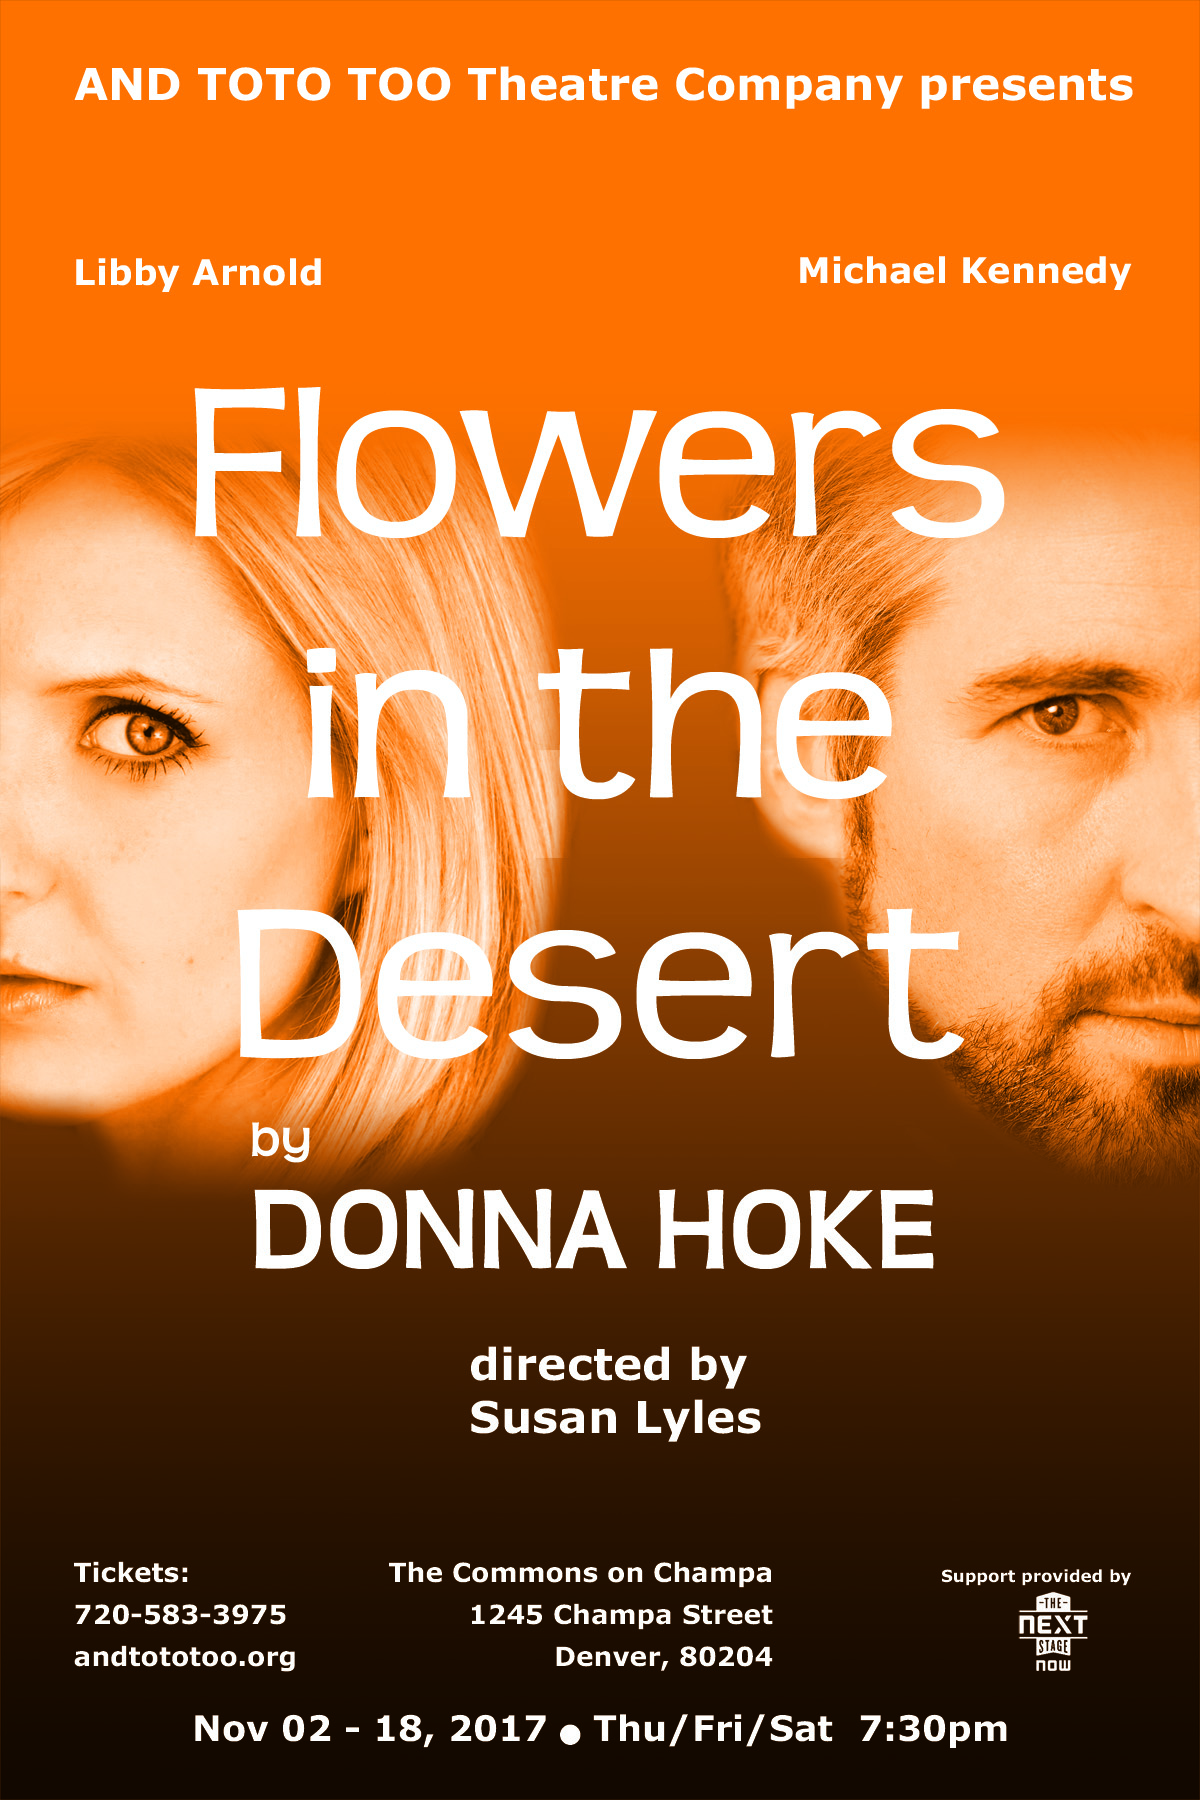 Flowers in the Desert — And Toto too Theatre Company